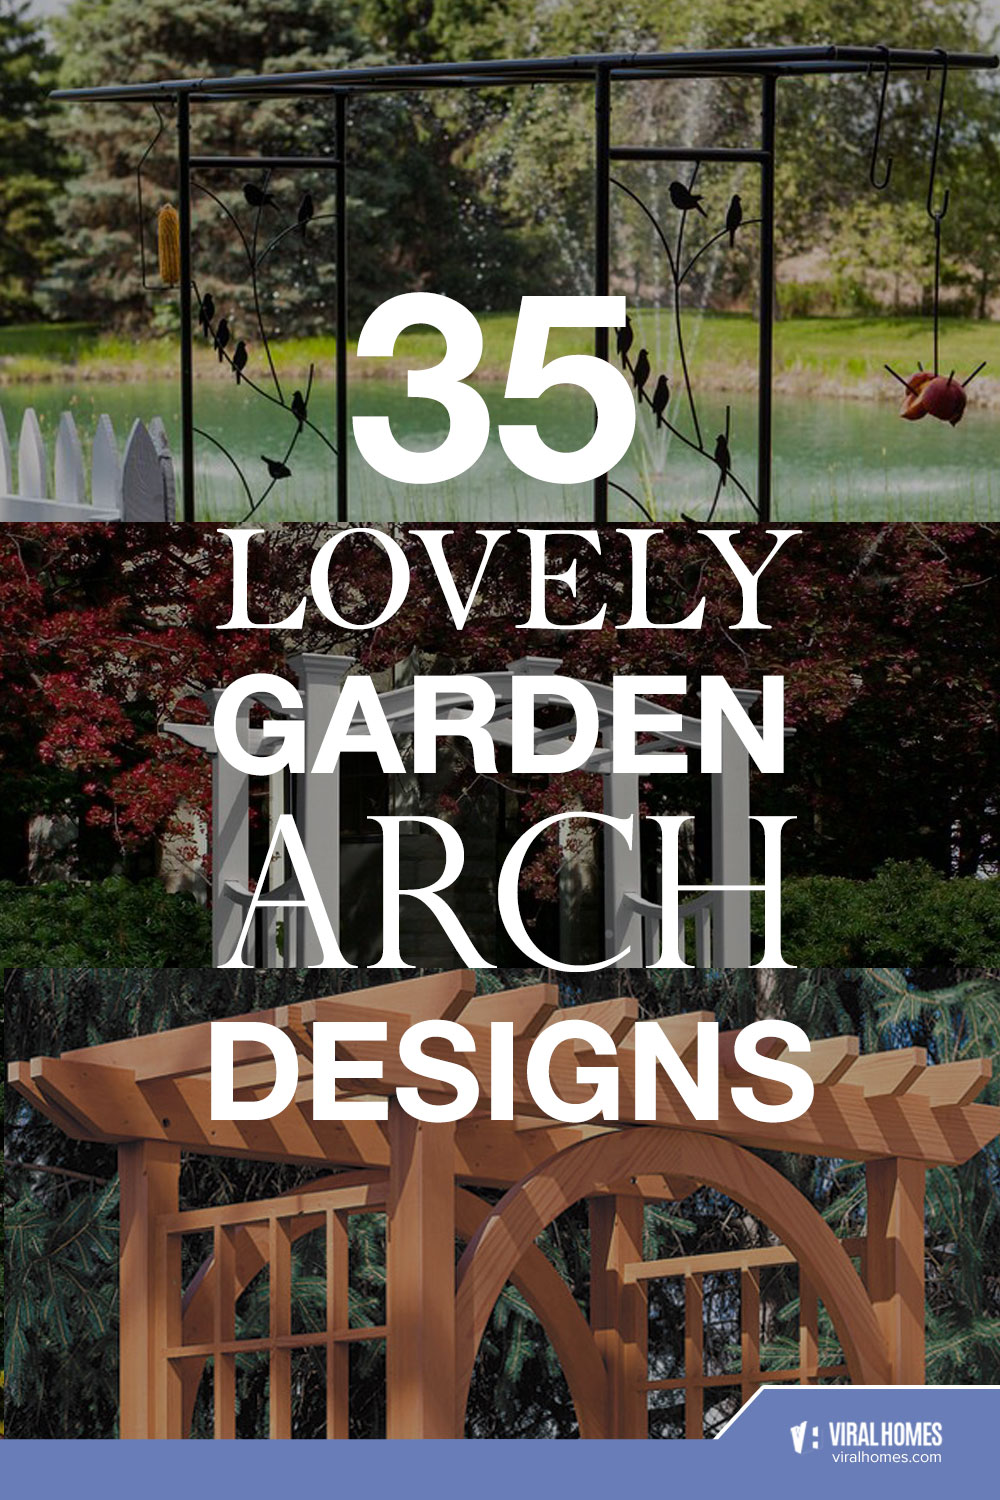 Garden Arch Designs That Never Go Out of Style